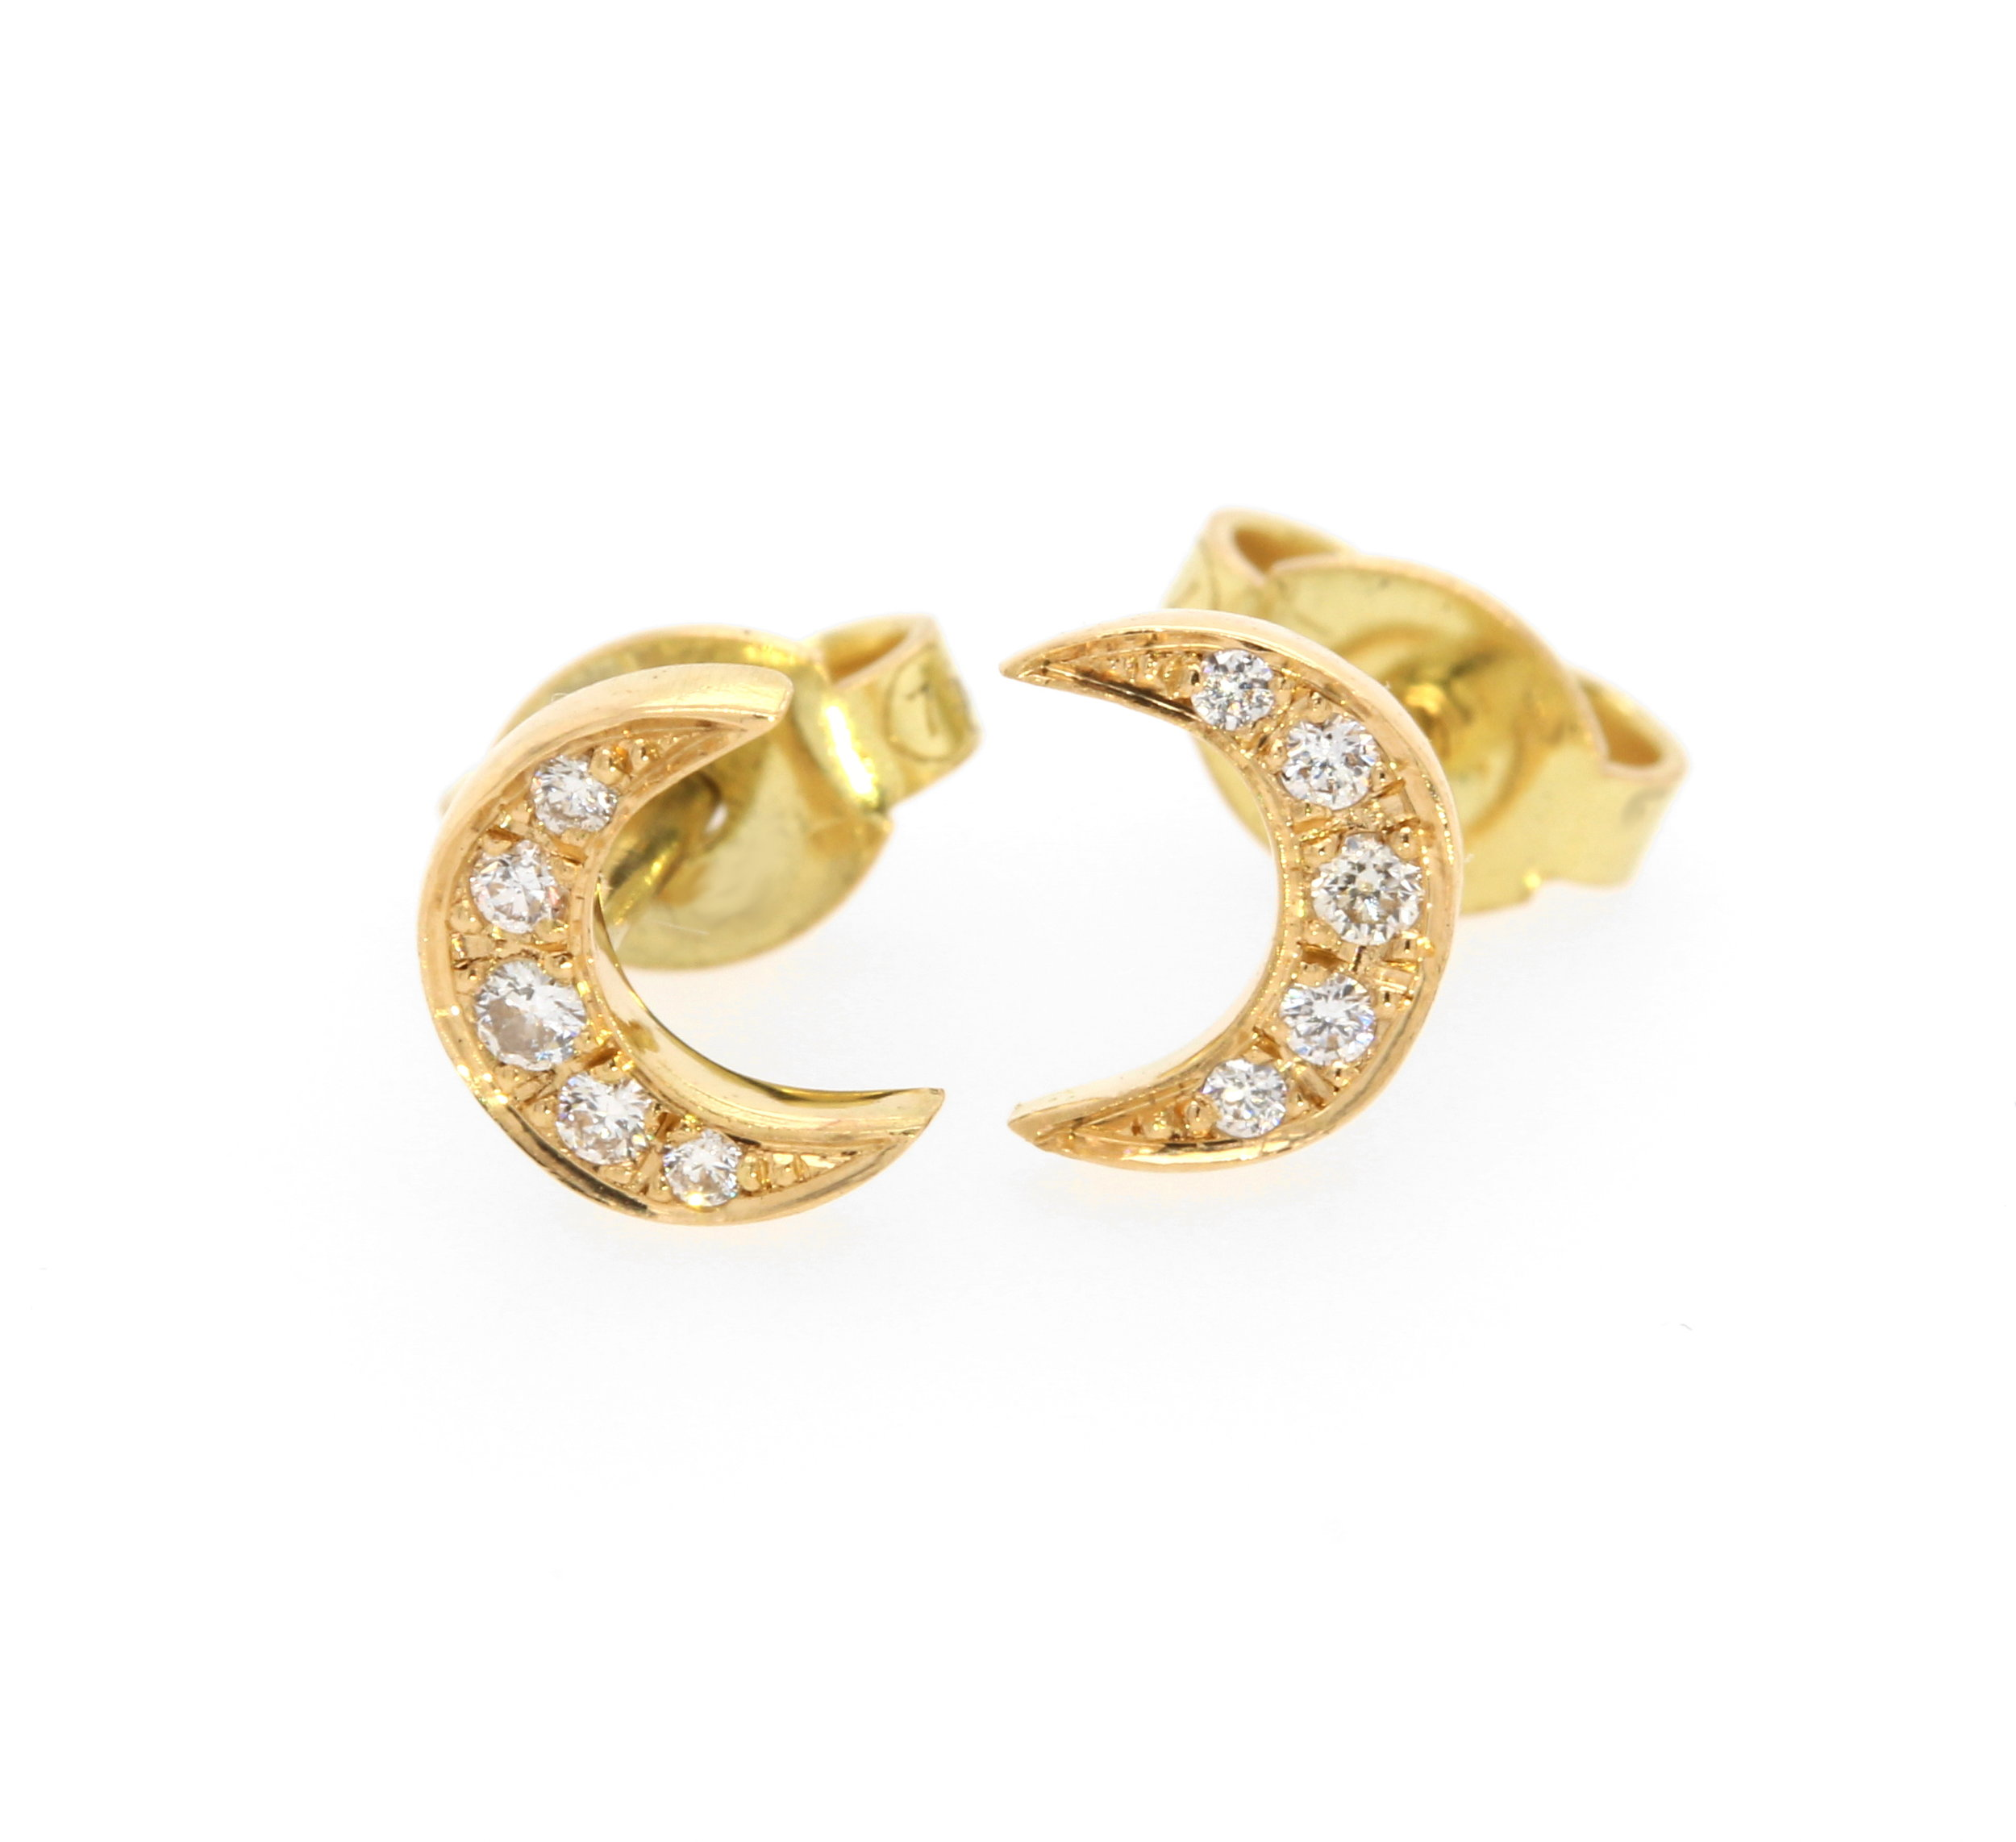 Diamond-set crescent studs in 18 karat yellow gold